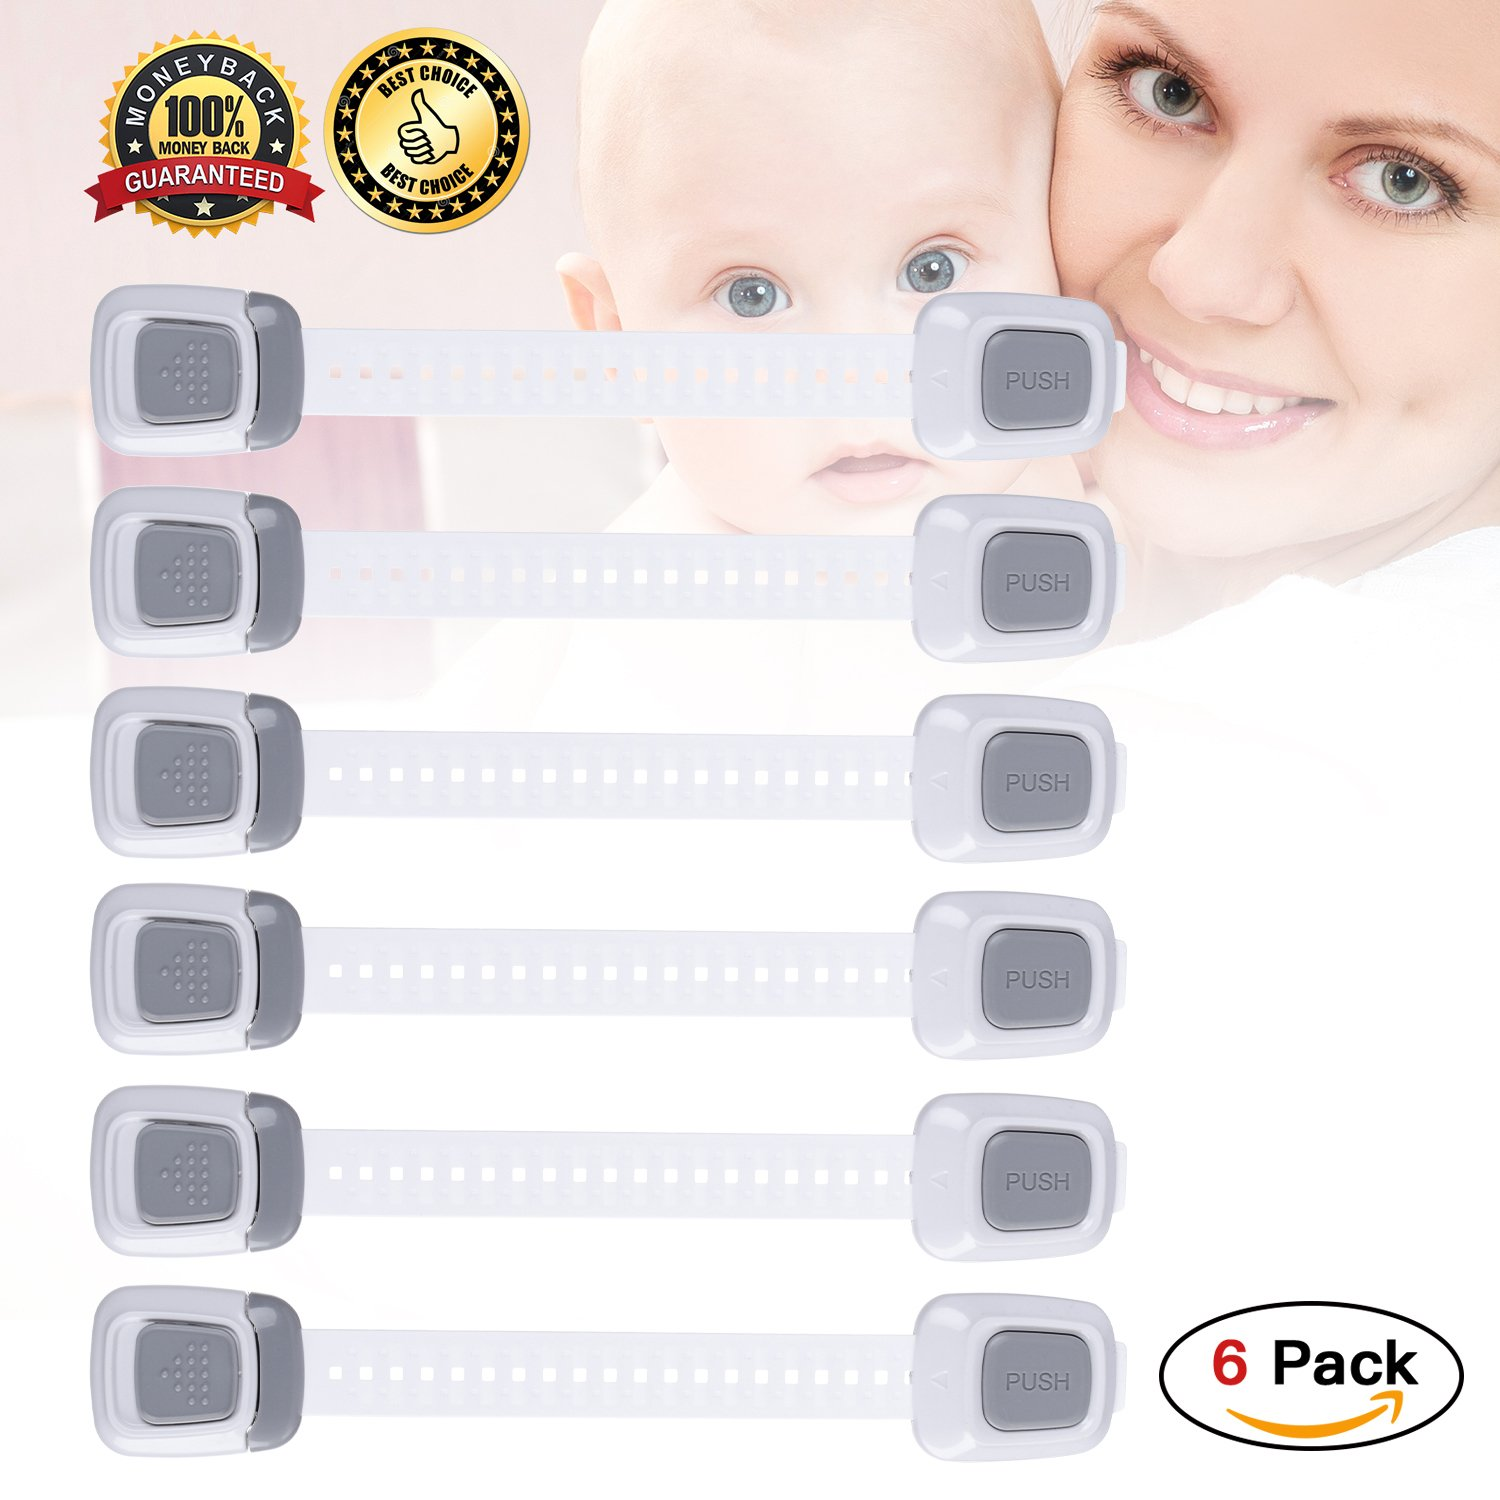 Cabinet Locks Child Safety Baby Proofing Child Safety Cabinet Locks Fridge Lock for Drawers,Toilet Cover,Fridge with Dual Button Operation and 3M Adhesive,6 Pack White-Grey Baby Safety Locks